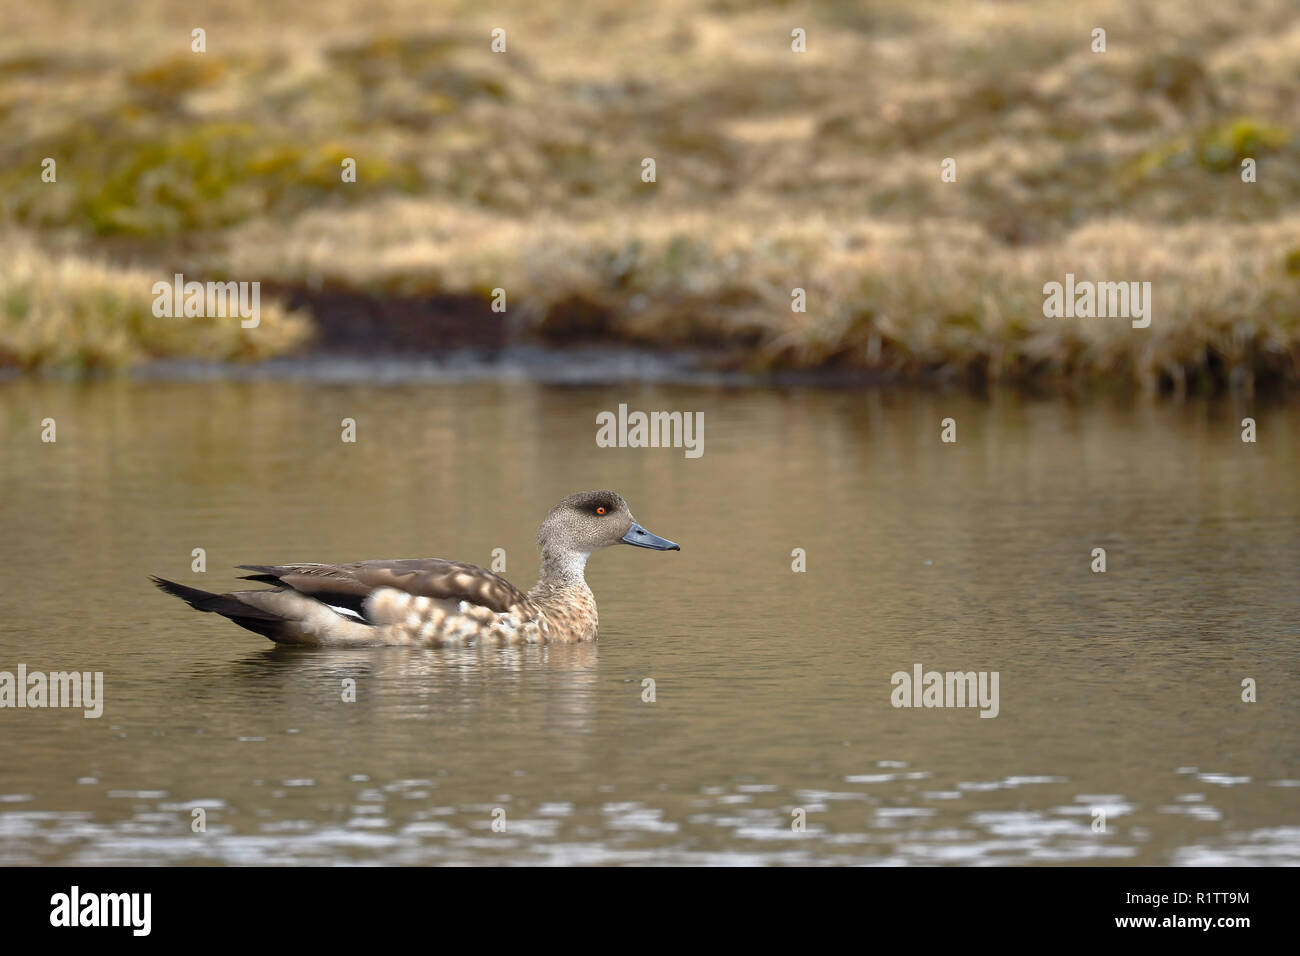 Crested duck (Lophonetta specularioides) sighted in its natural environment at 4000 masl while swimming calmly at dawn. - Stock Image